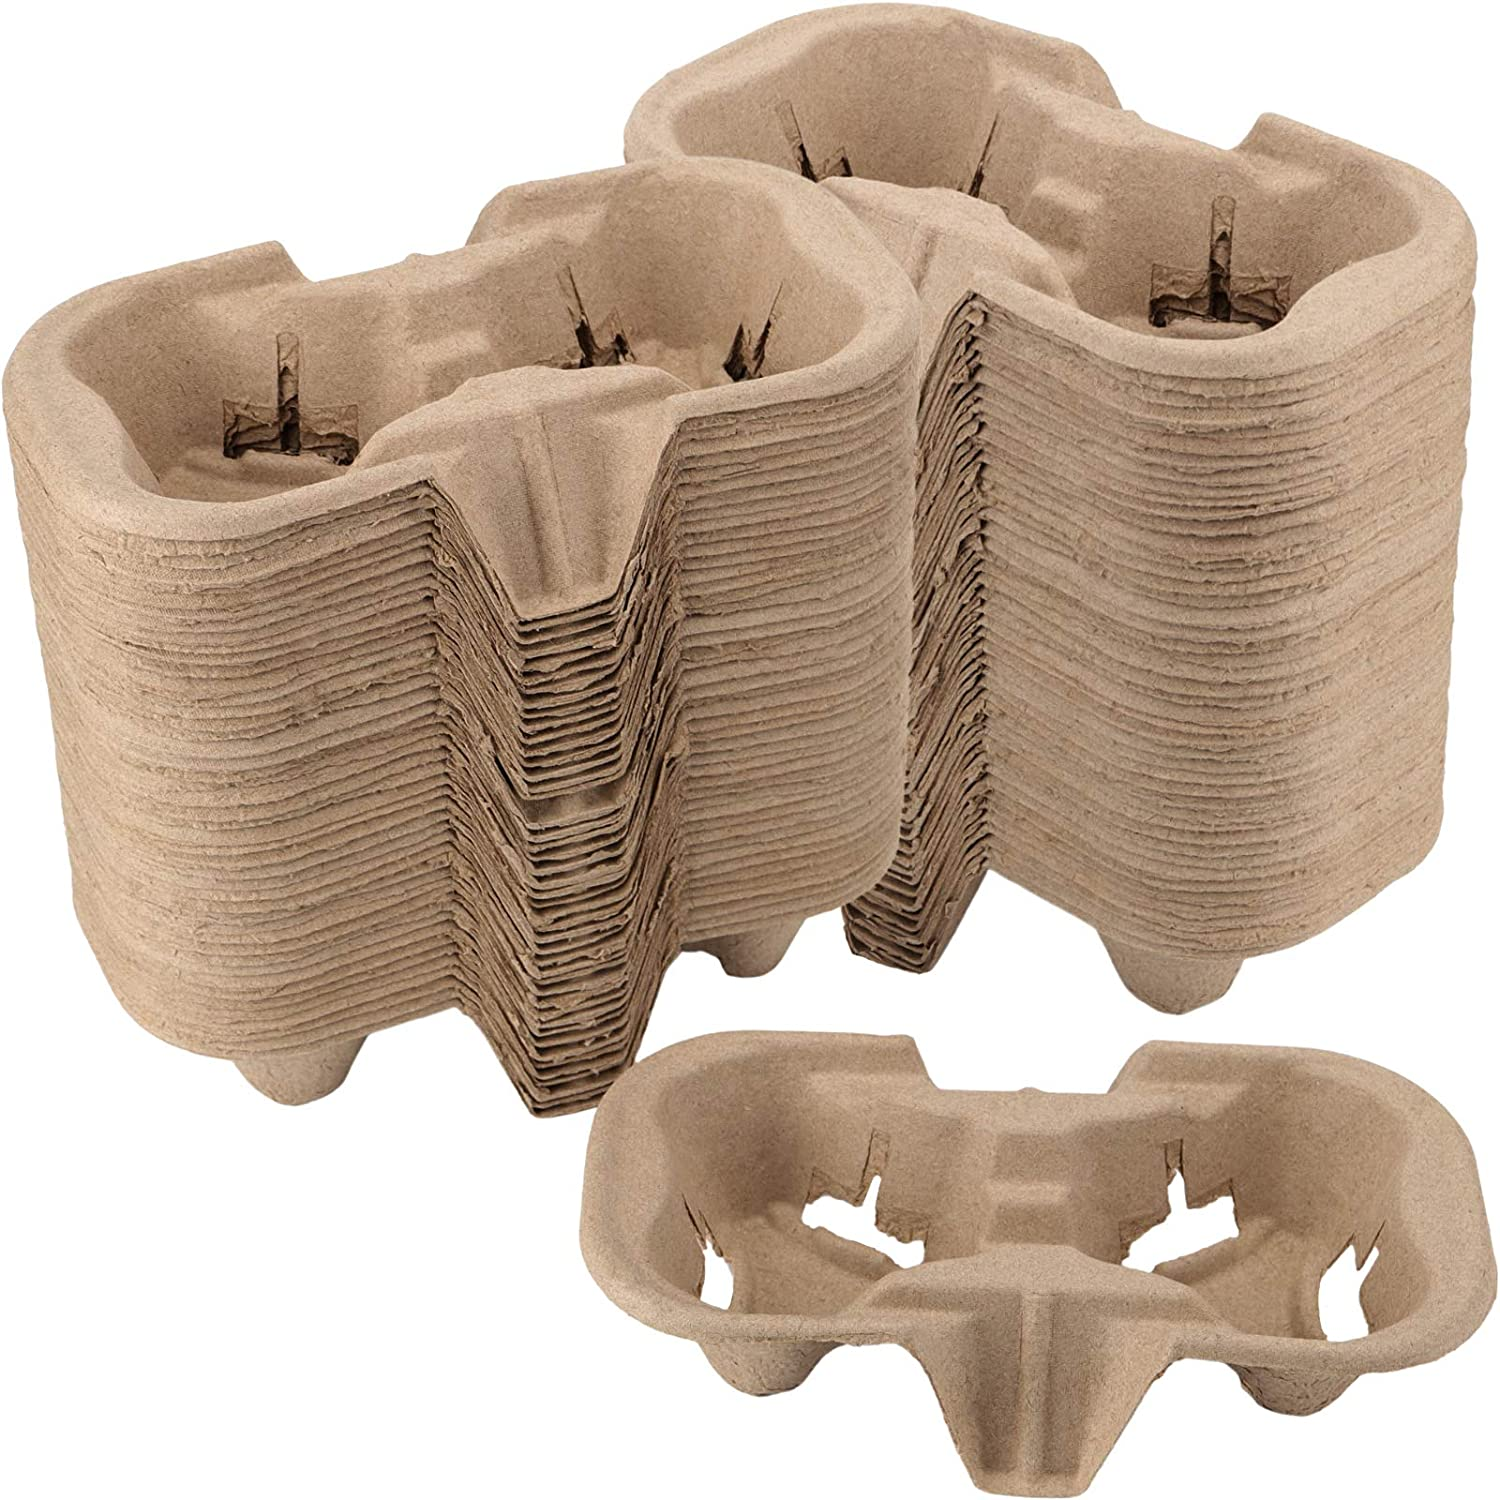 FAATCOI 2 Cup Drink Carrier, Pulp Fiber Biodegradable Disposable Take-Out Cup Carriers Holders for Coffee Hot Cold Drinks Beverages, 100 Pack